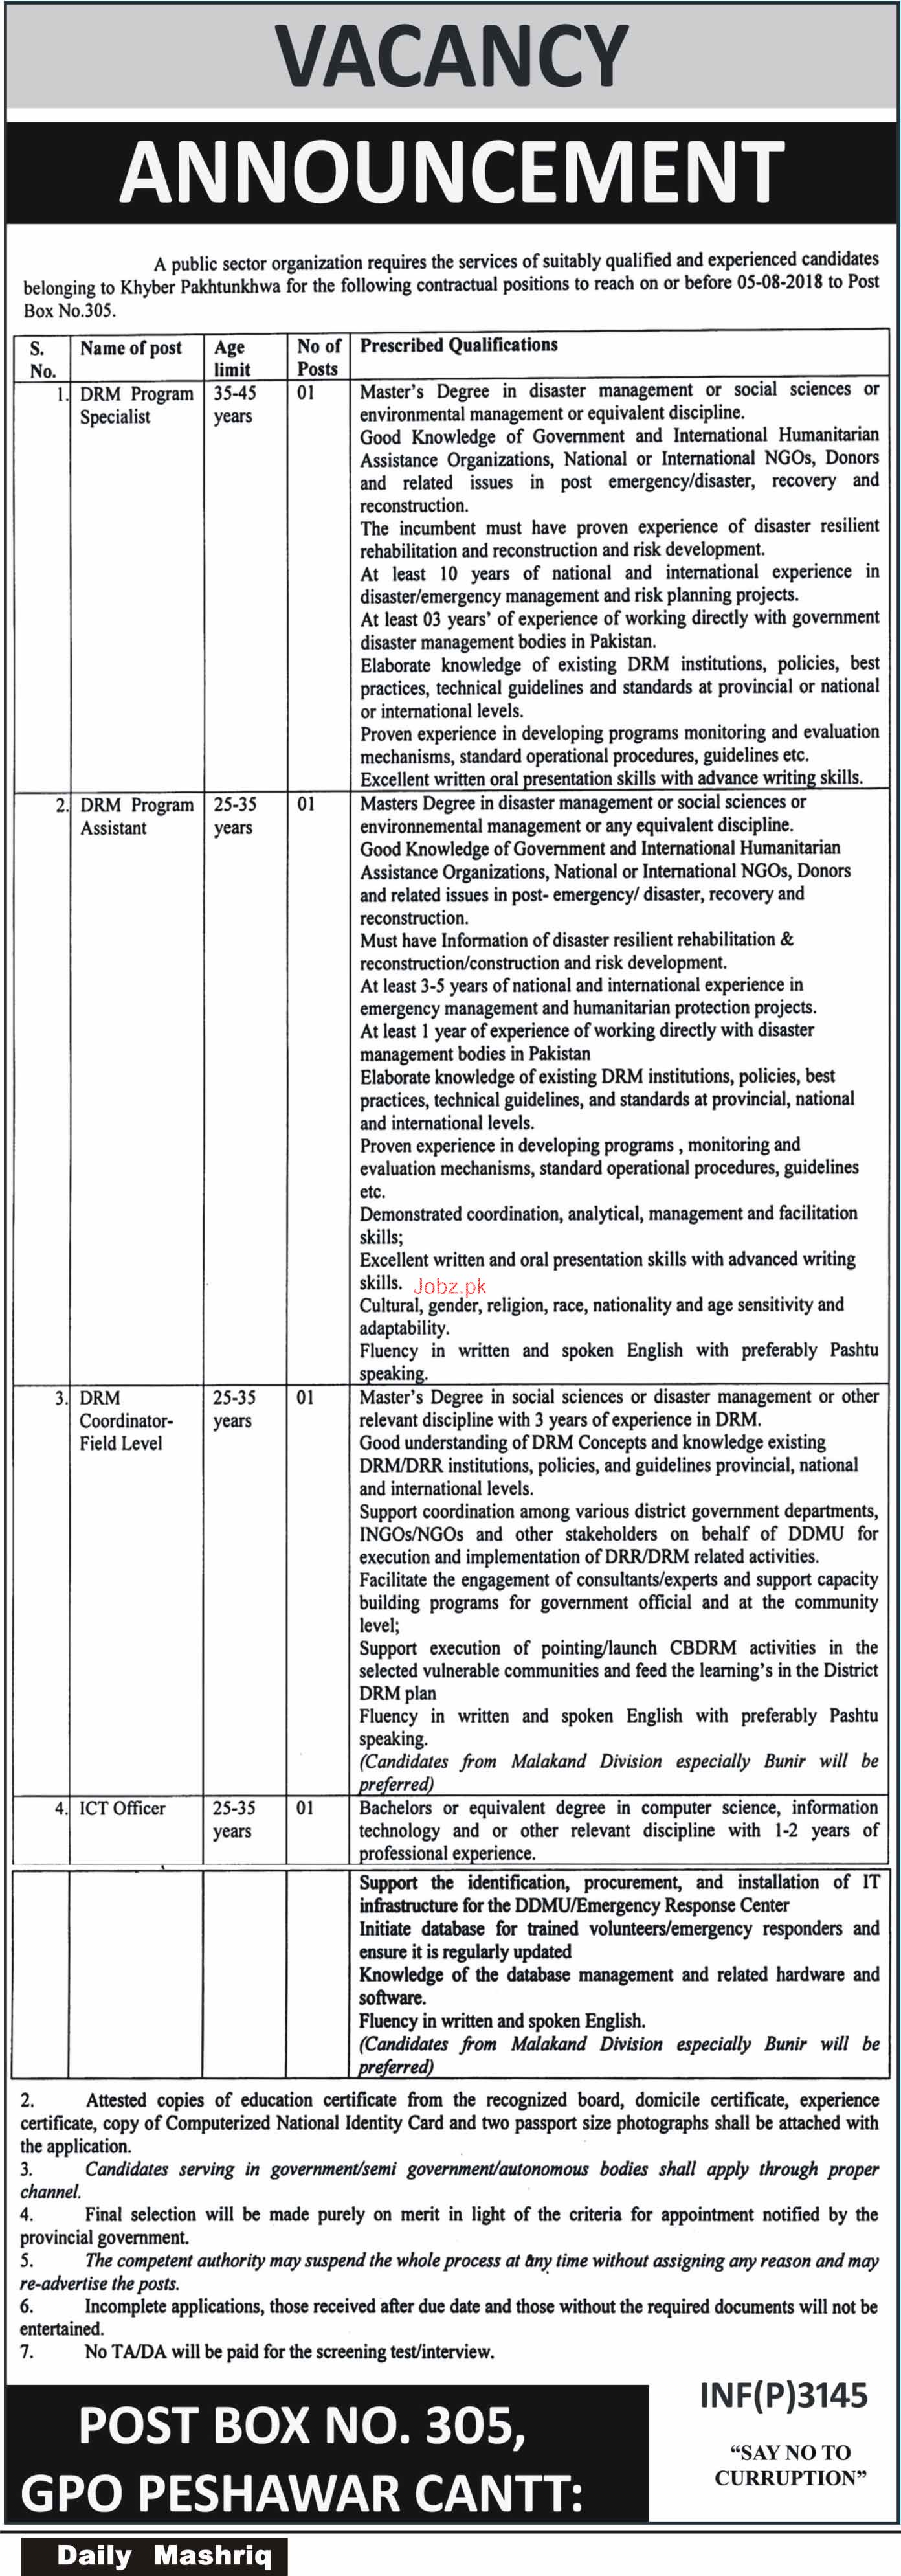 Public Sector Organization DRM Program Specialists Jobs